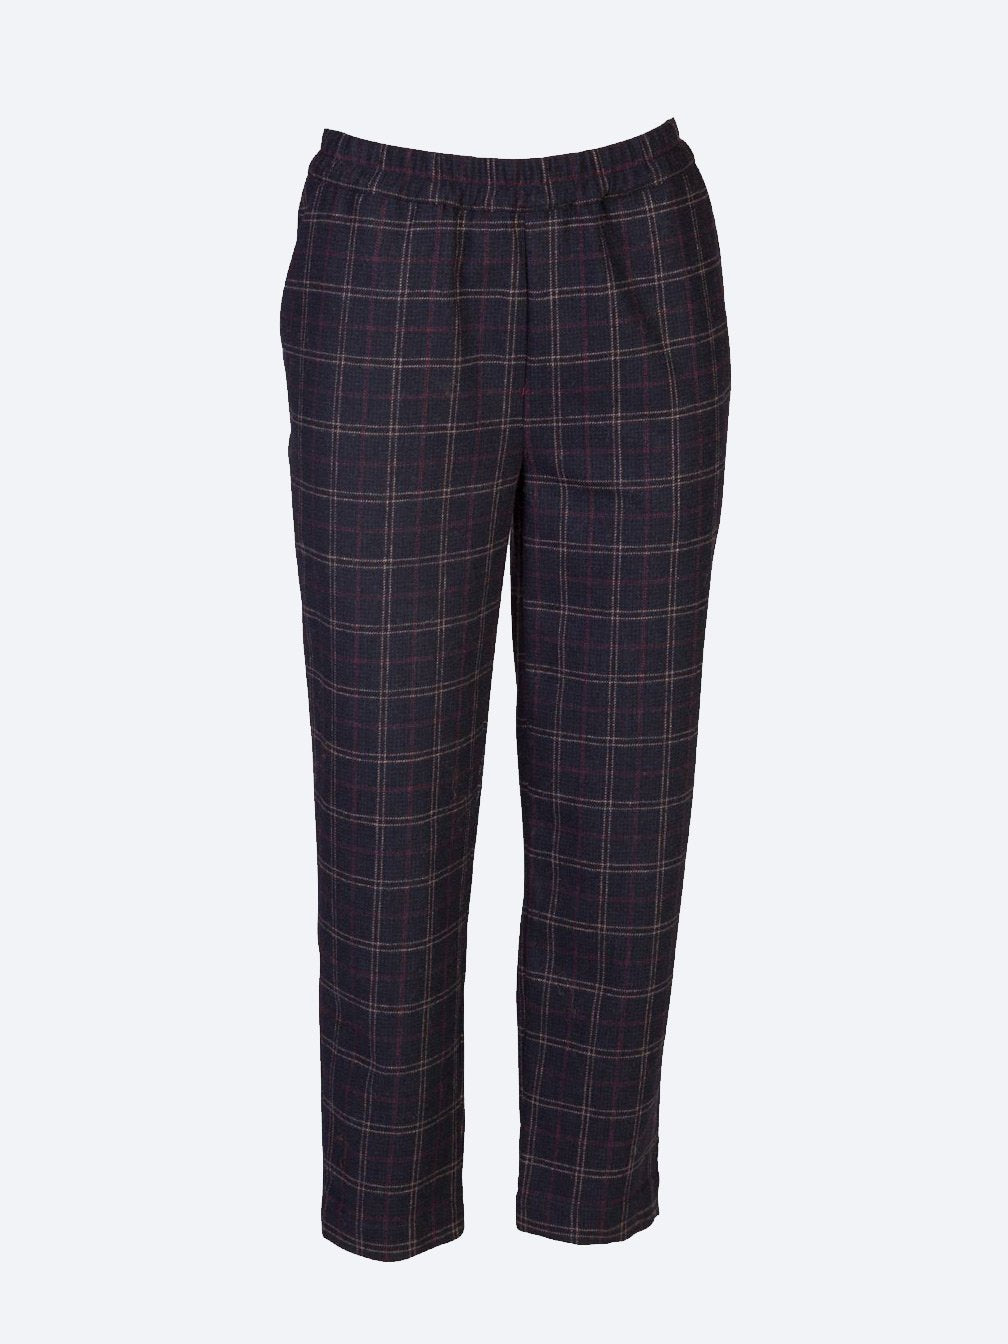 Yeltuor - SKIN & THREADS - Pants - SKIN & THREADS RELAXED CHECK PANT -  -